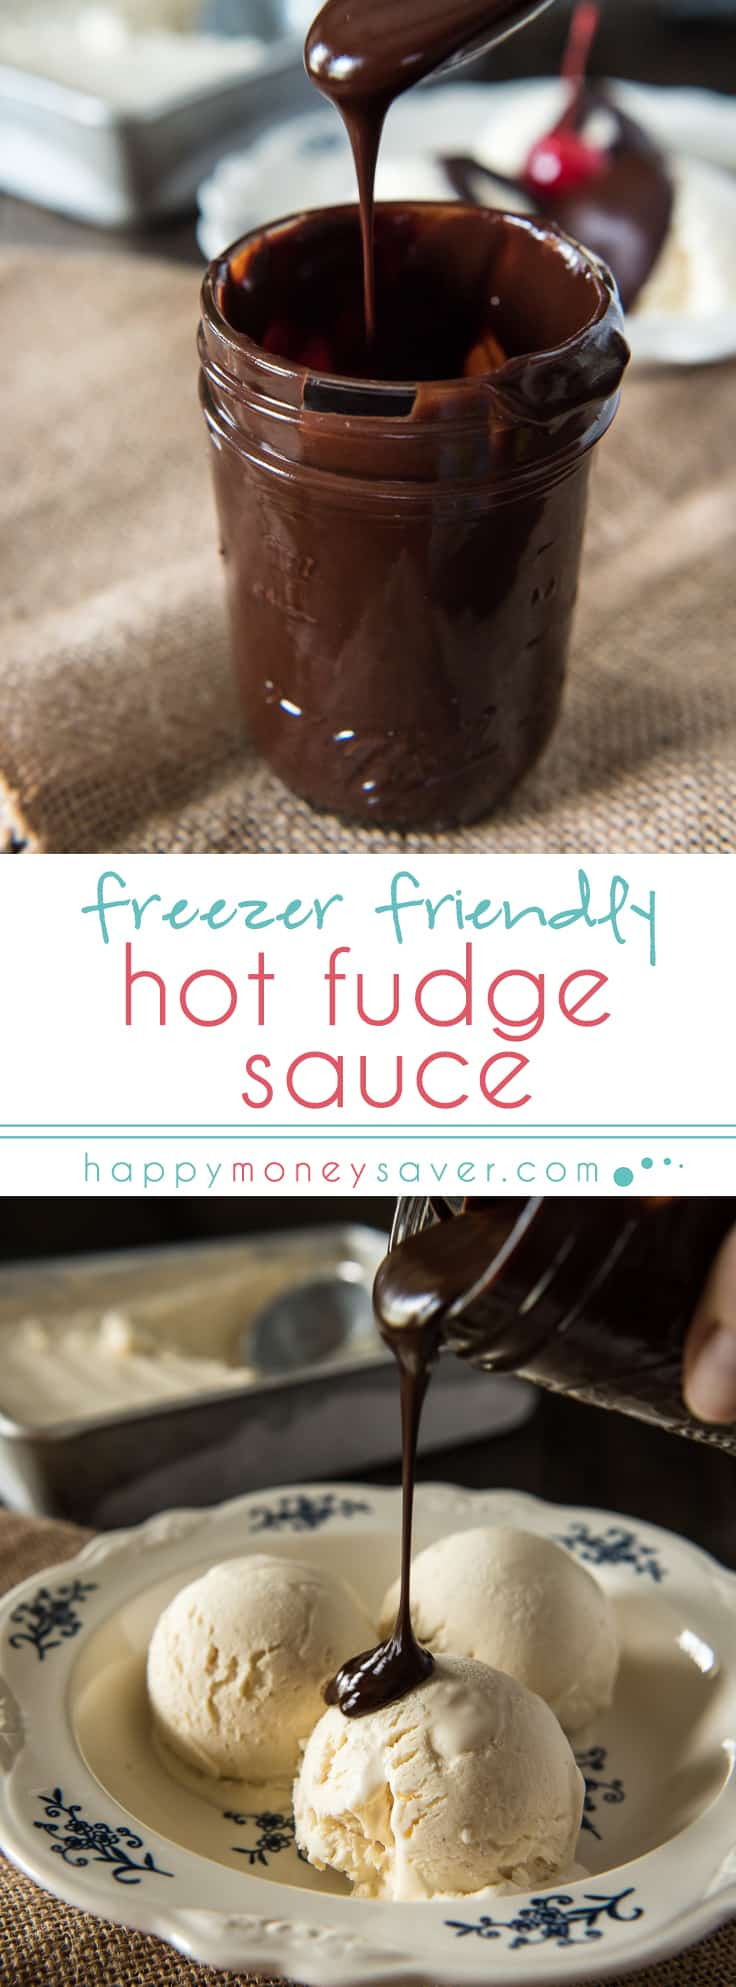 Freezer Friendly Hot Fudge Sauce, made in minutes and ready to top your favorite ice cream! | happymoneysaver.com